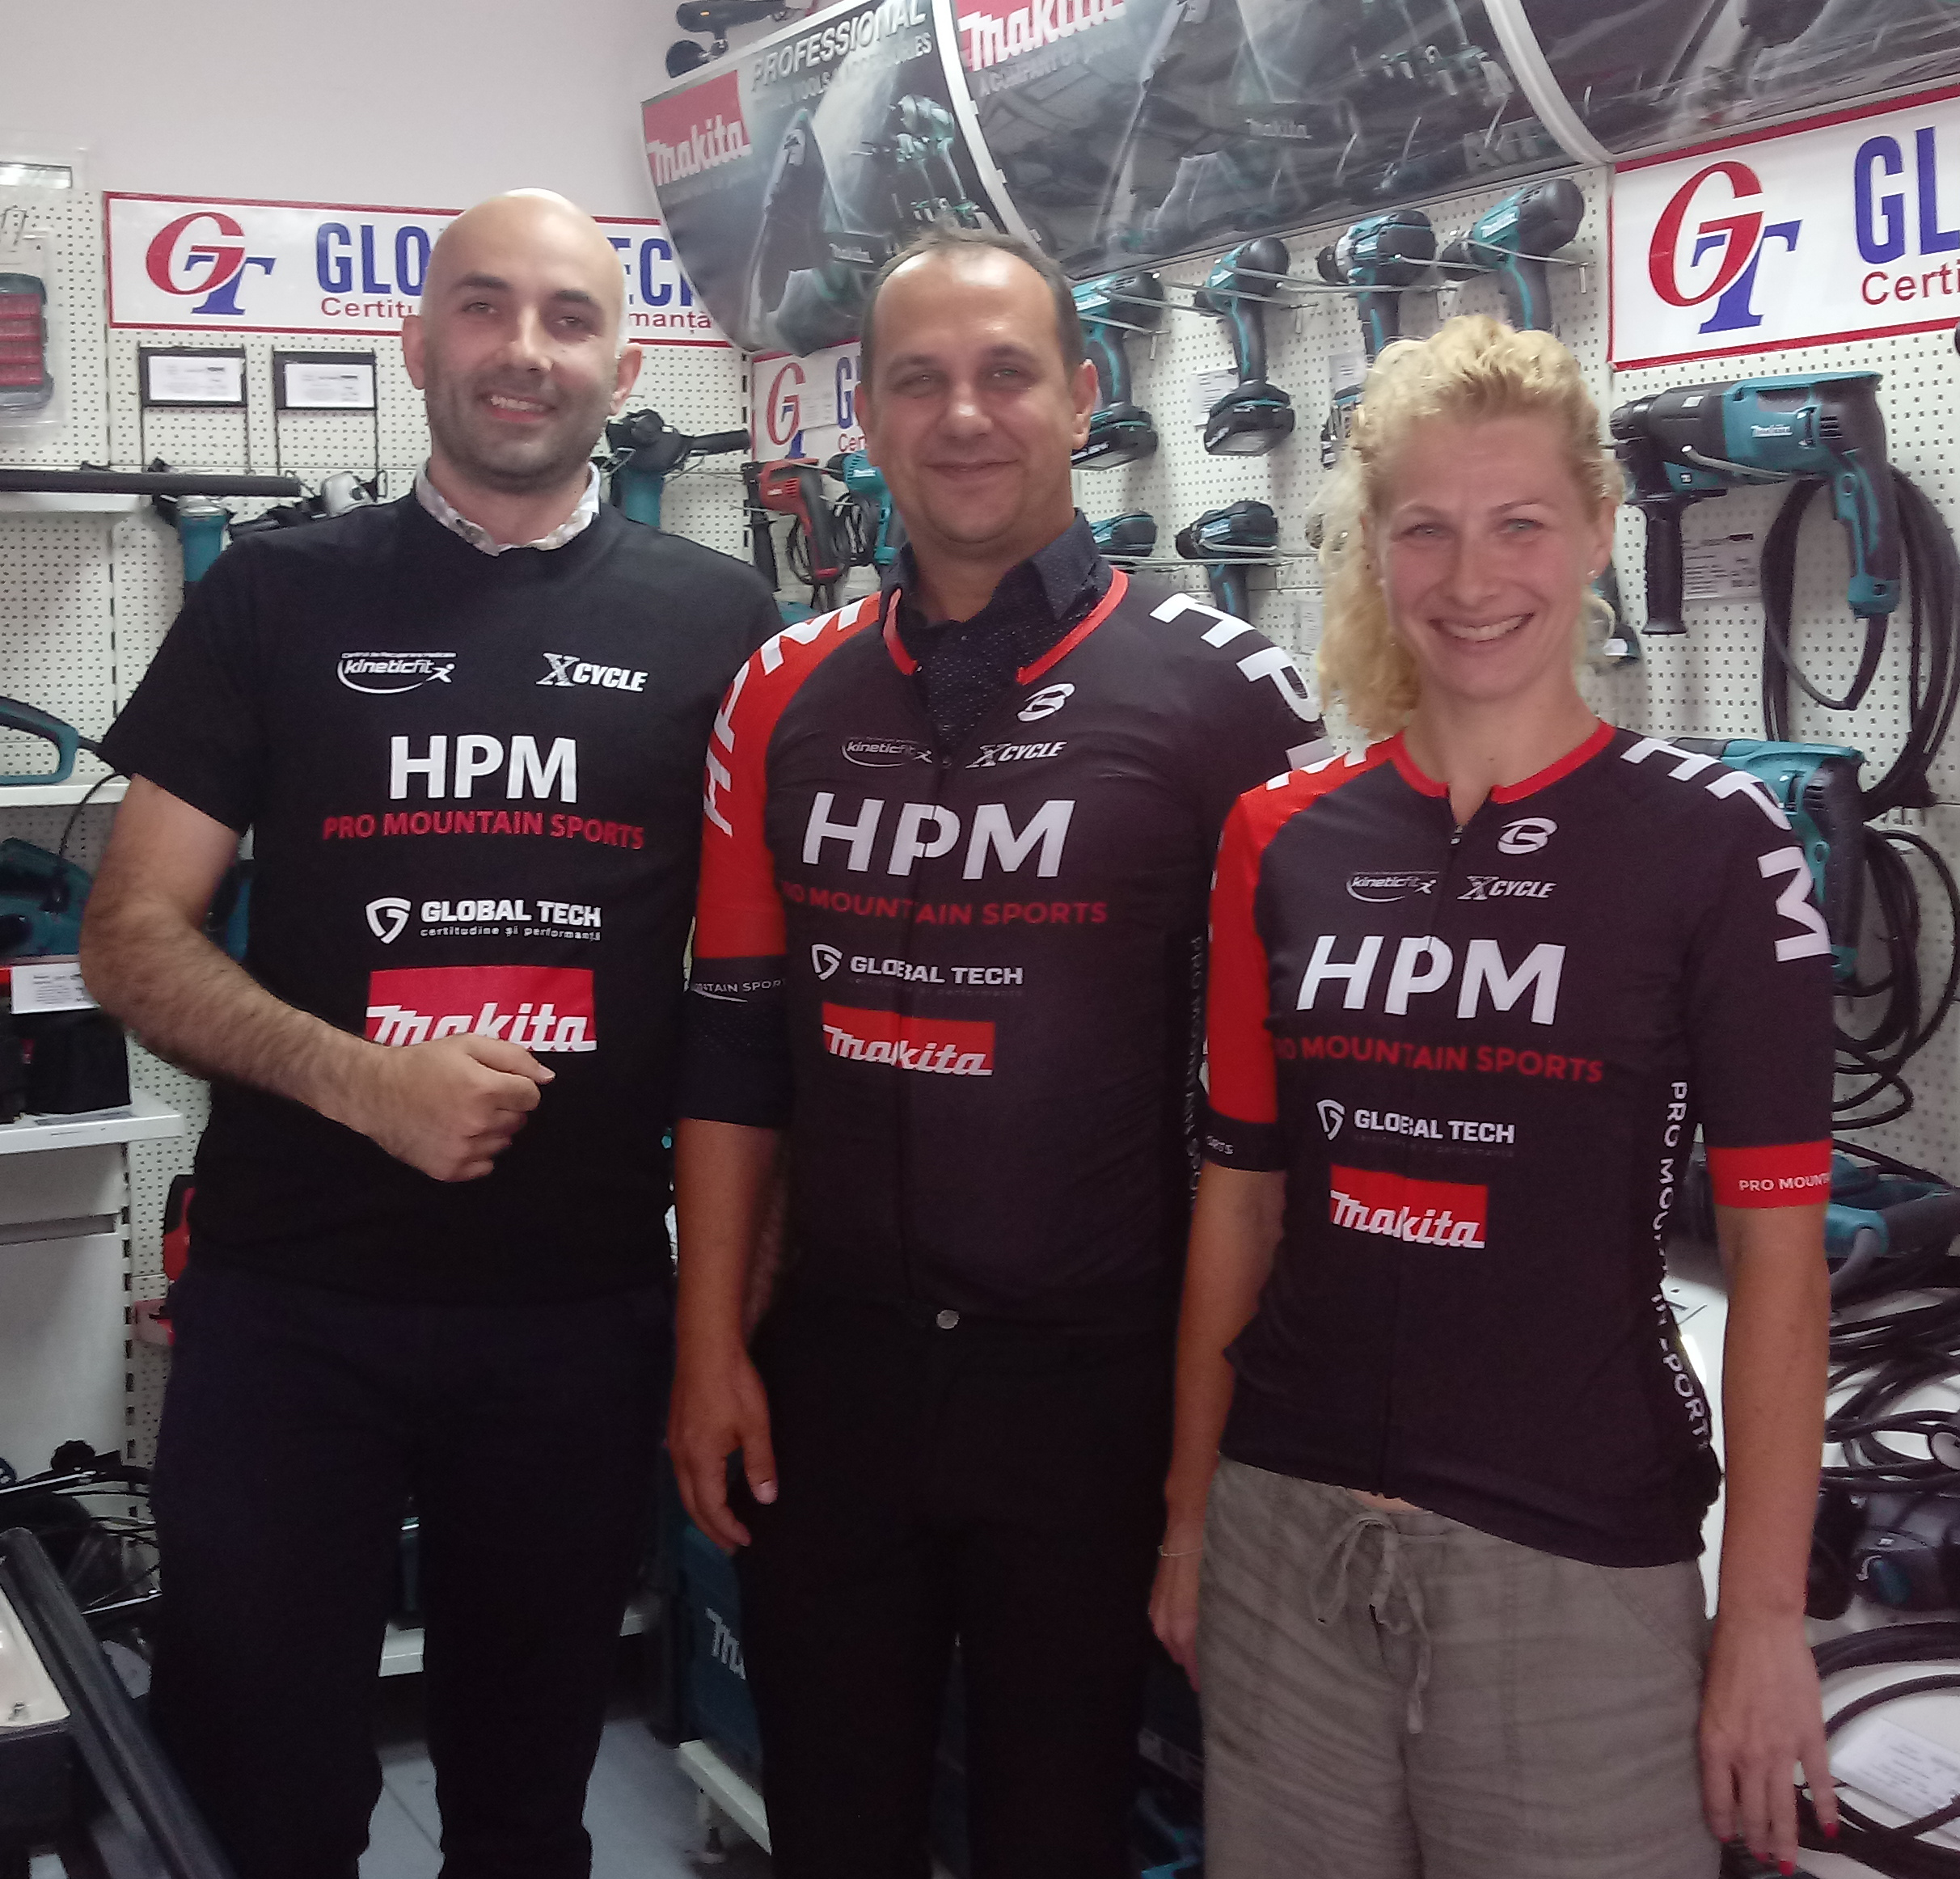 Un nou membru in echipa HPM - Pro Mountain Sports